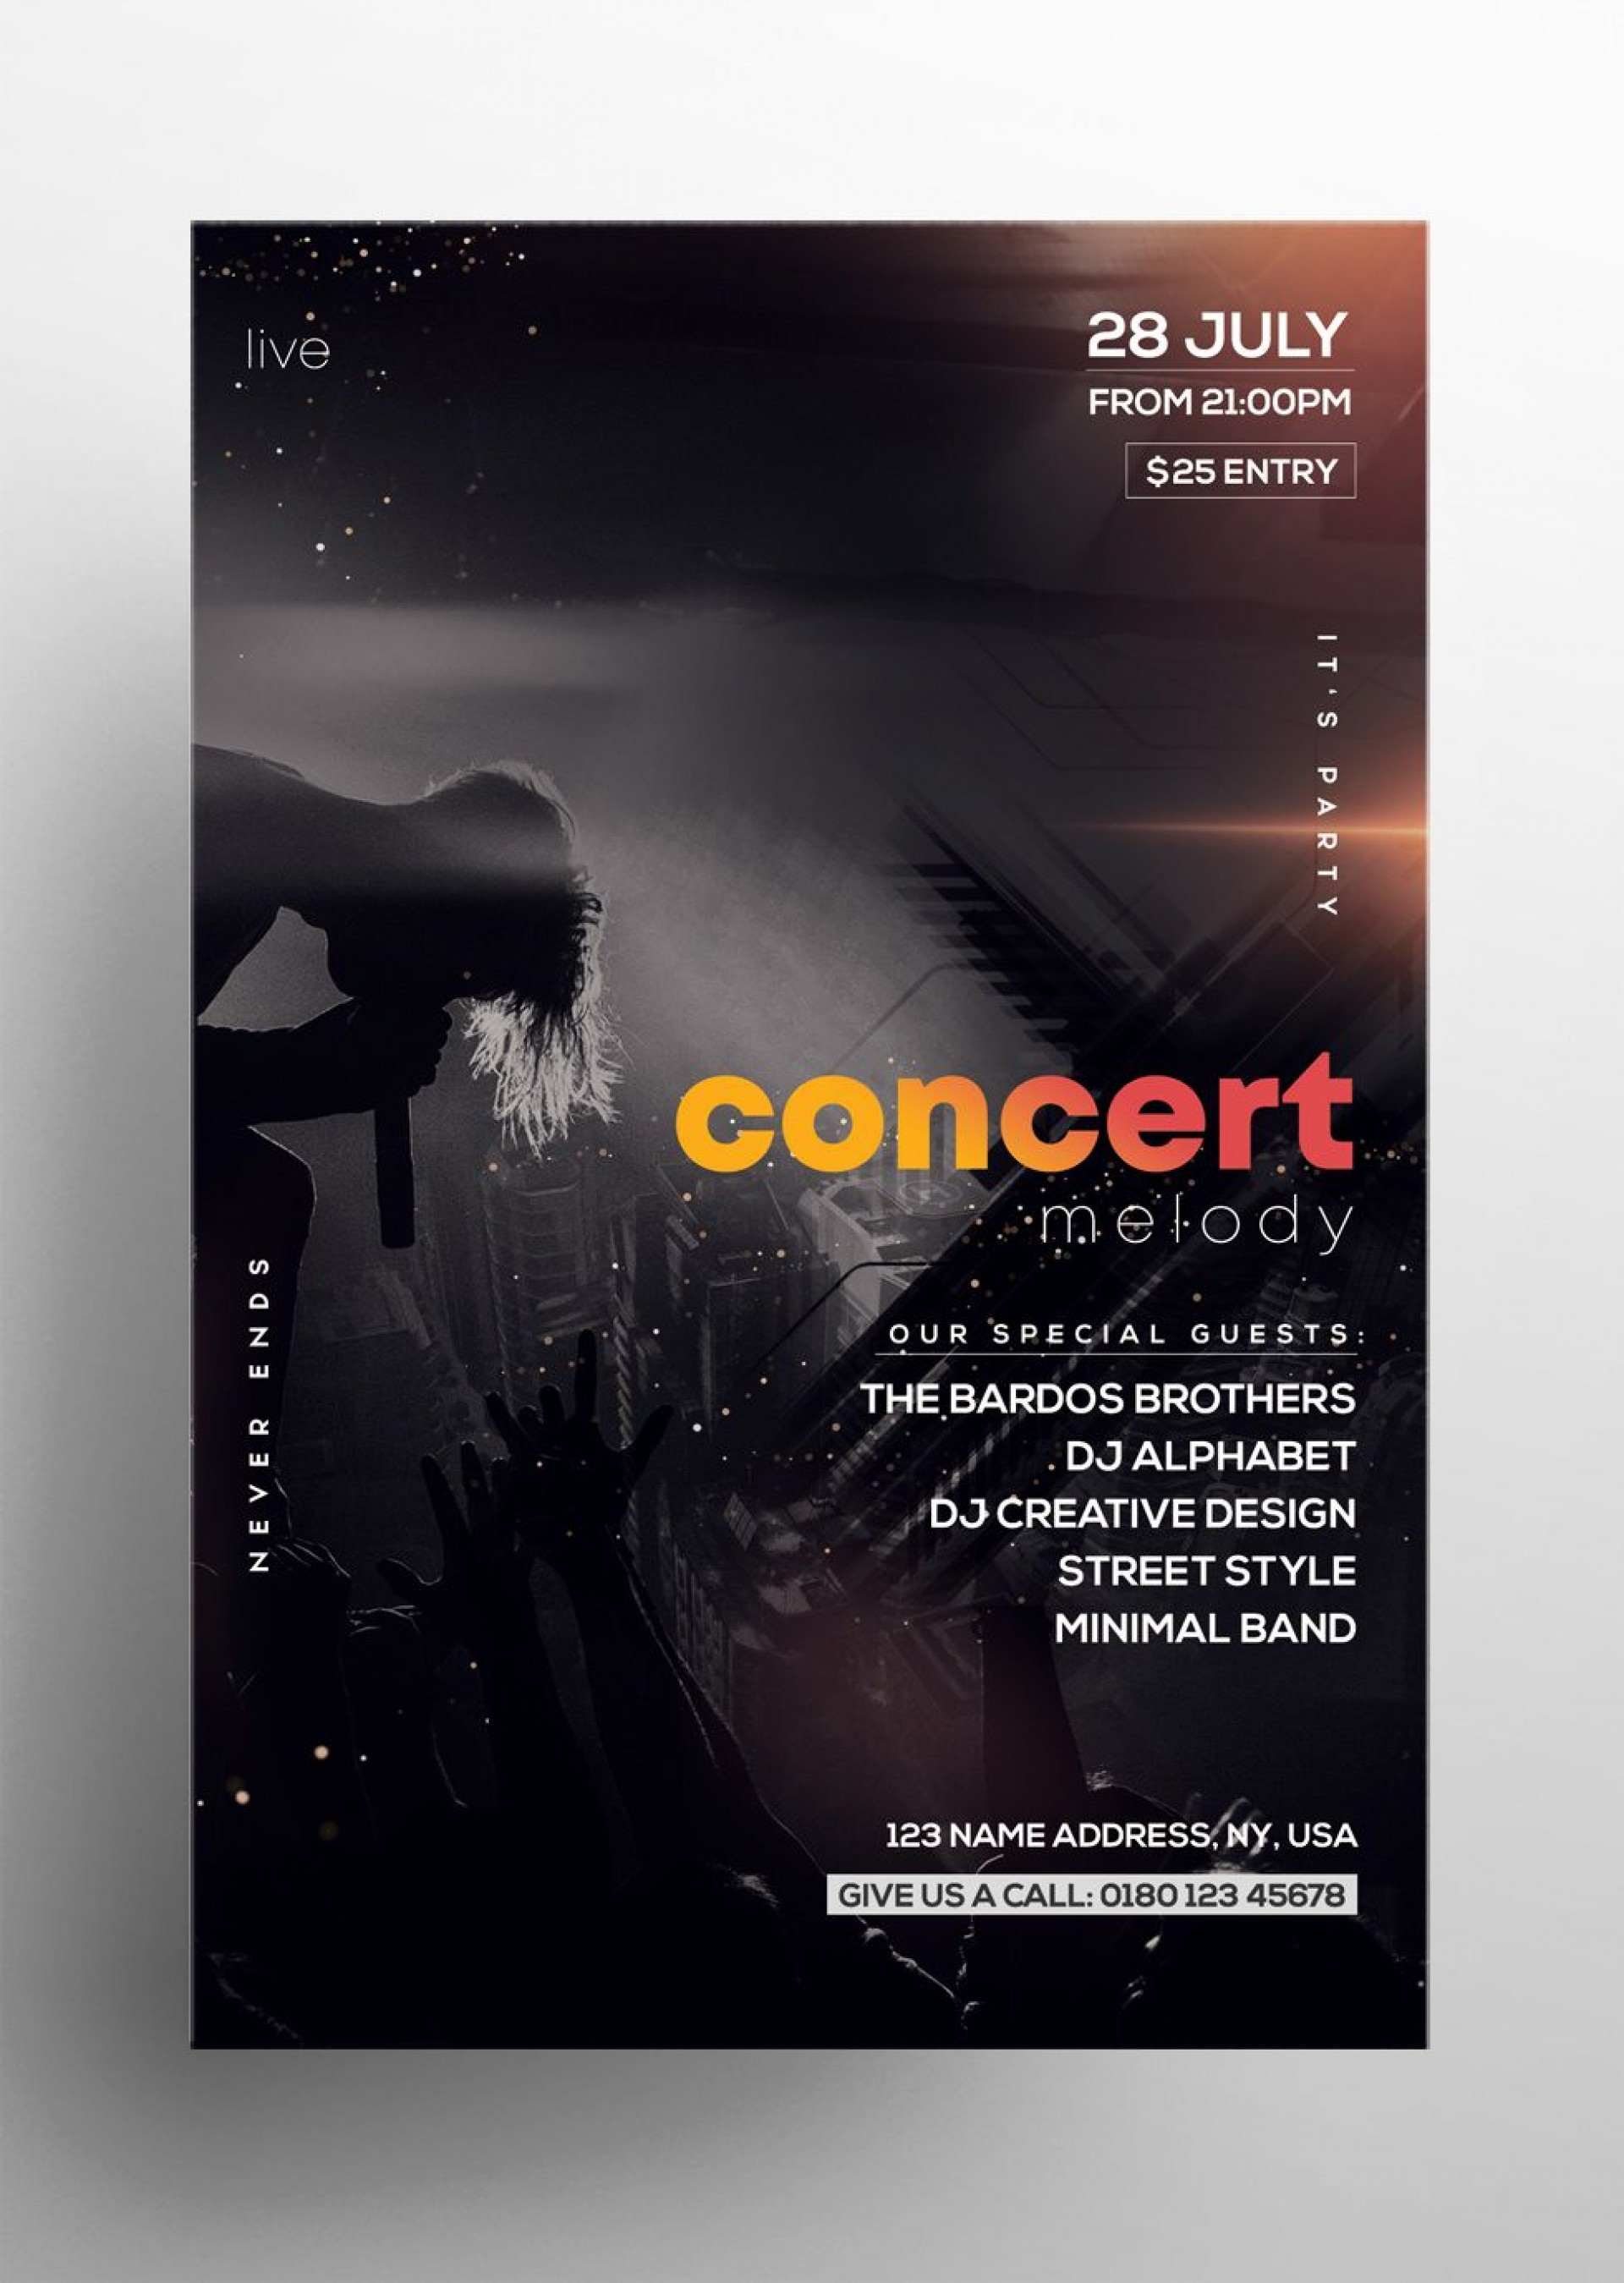 004 Surprising Free Concert Poster Template Sample  Word Classical Music1920